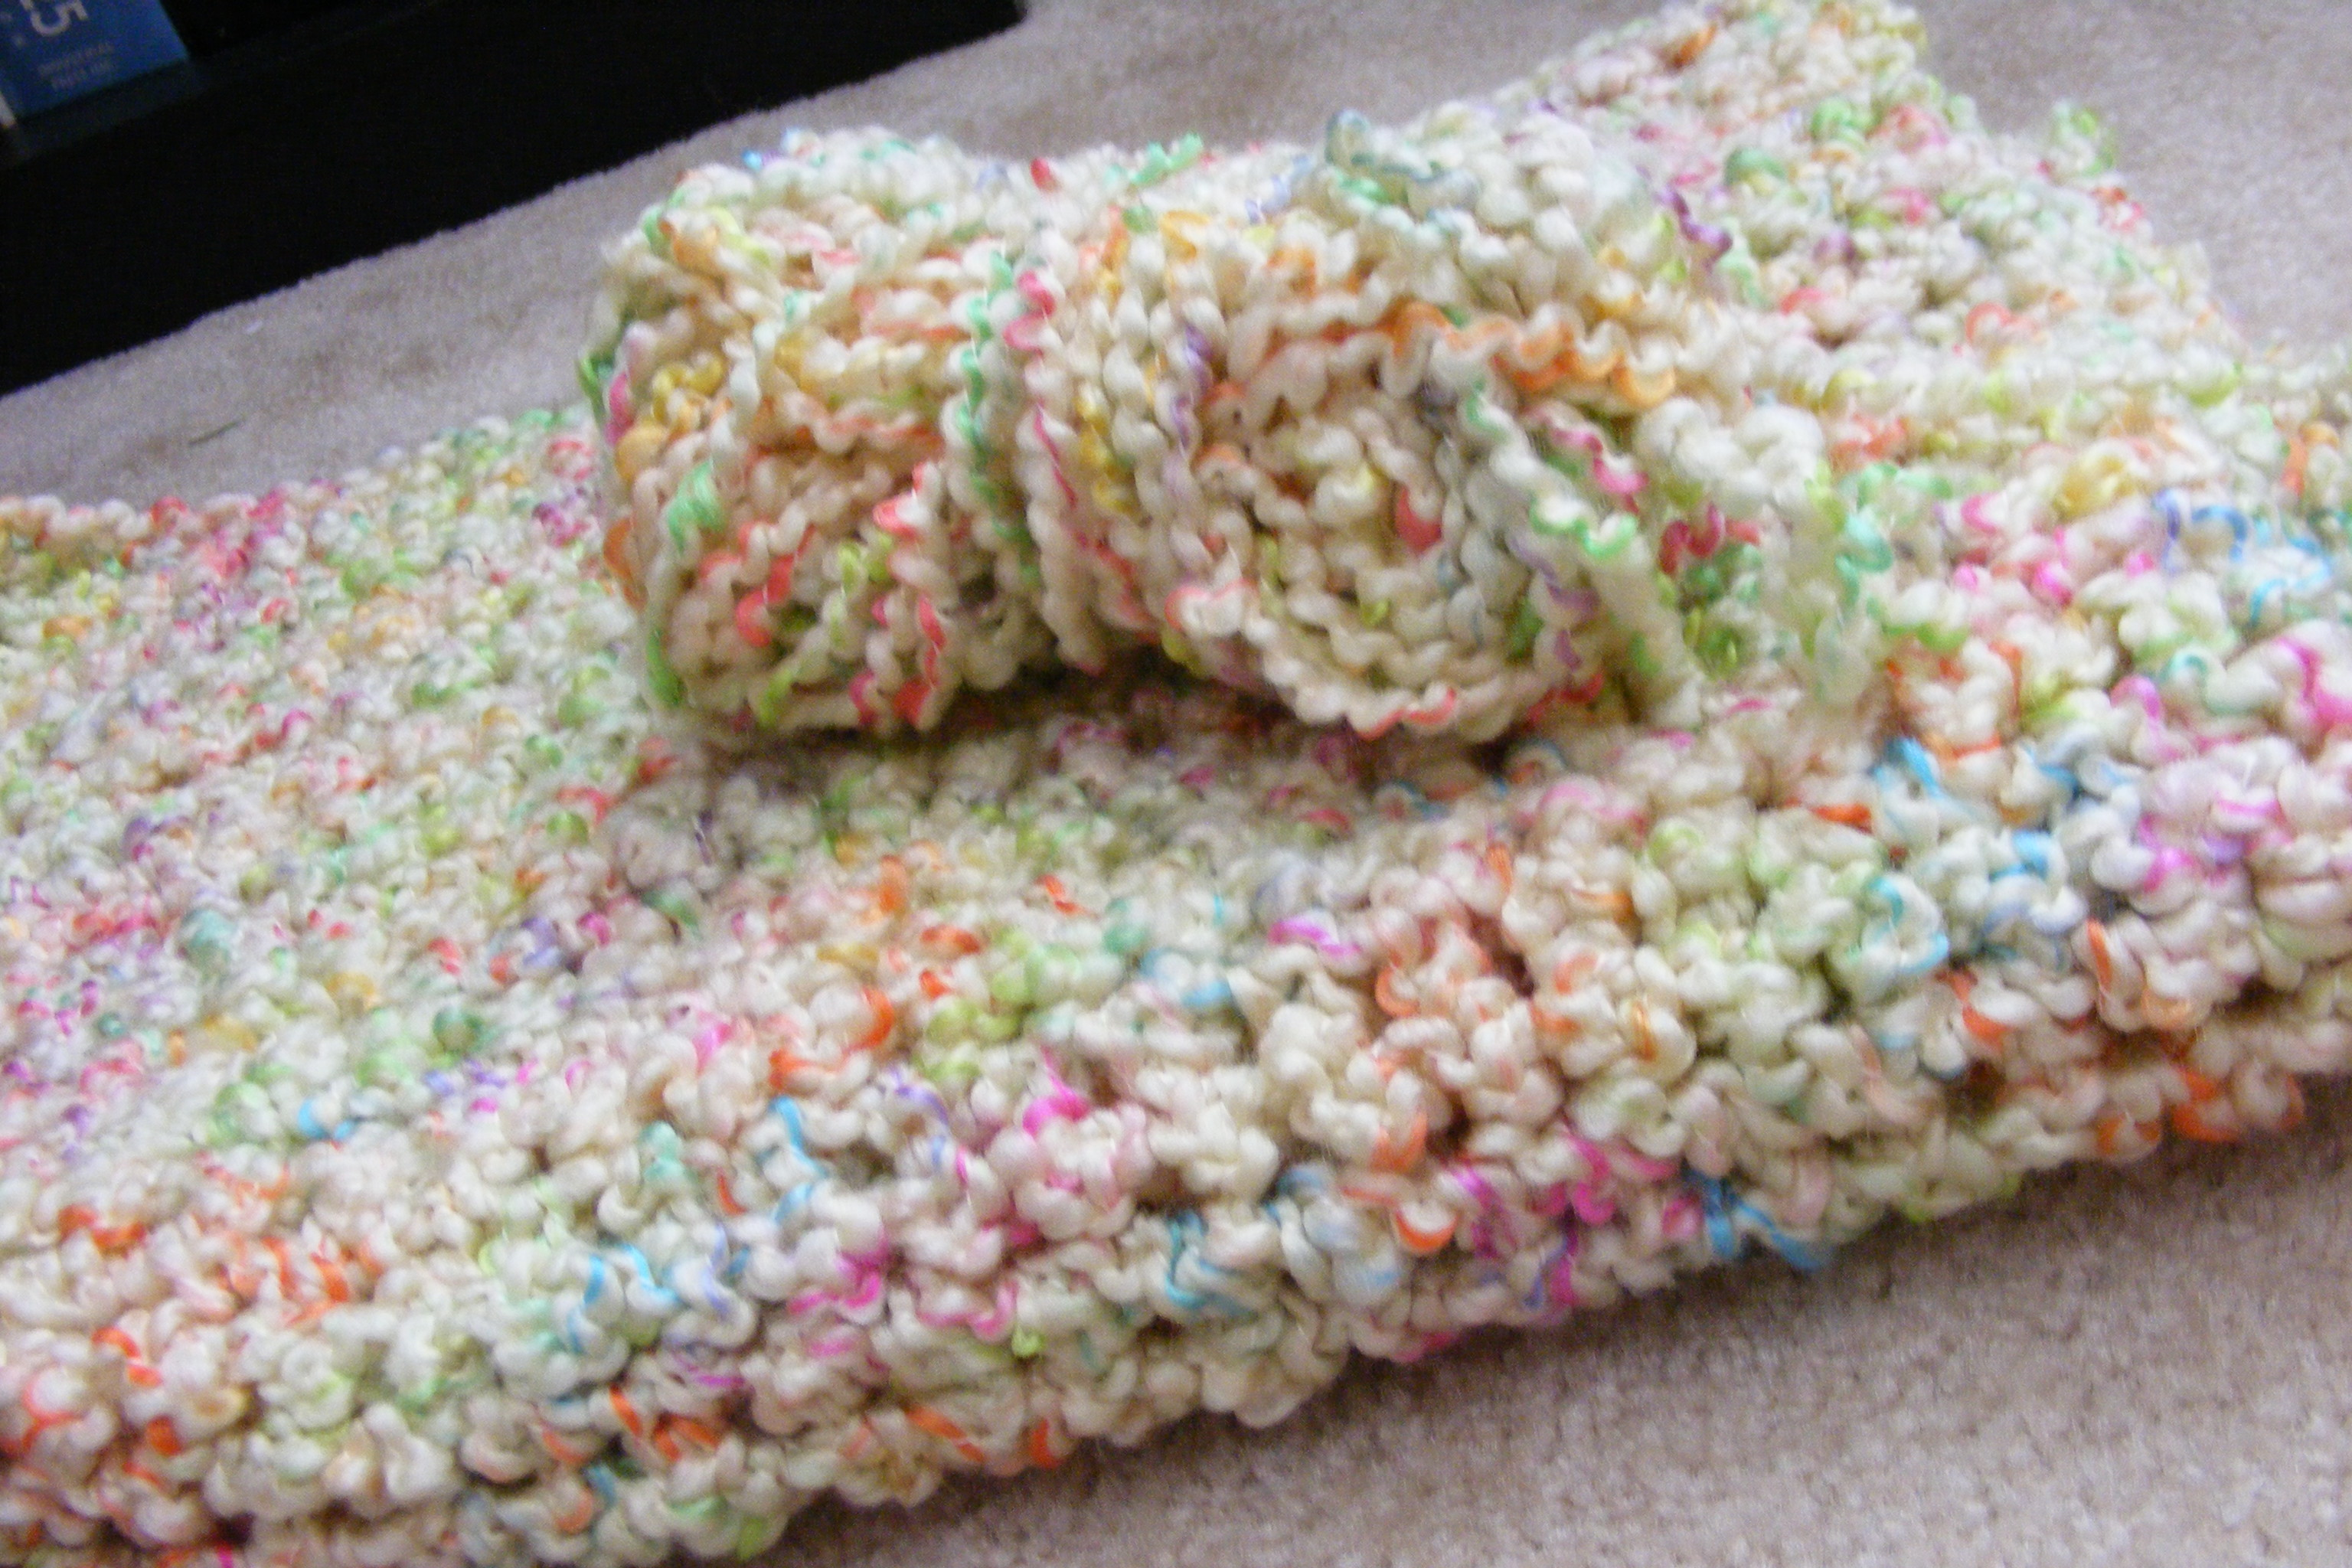 Crocheting Baby Blanket : Crochet Basket & Two Baby Blankets GretchKals Yarny Adventures